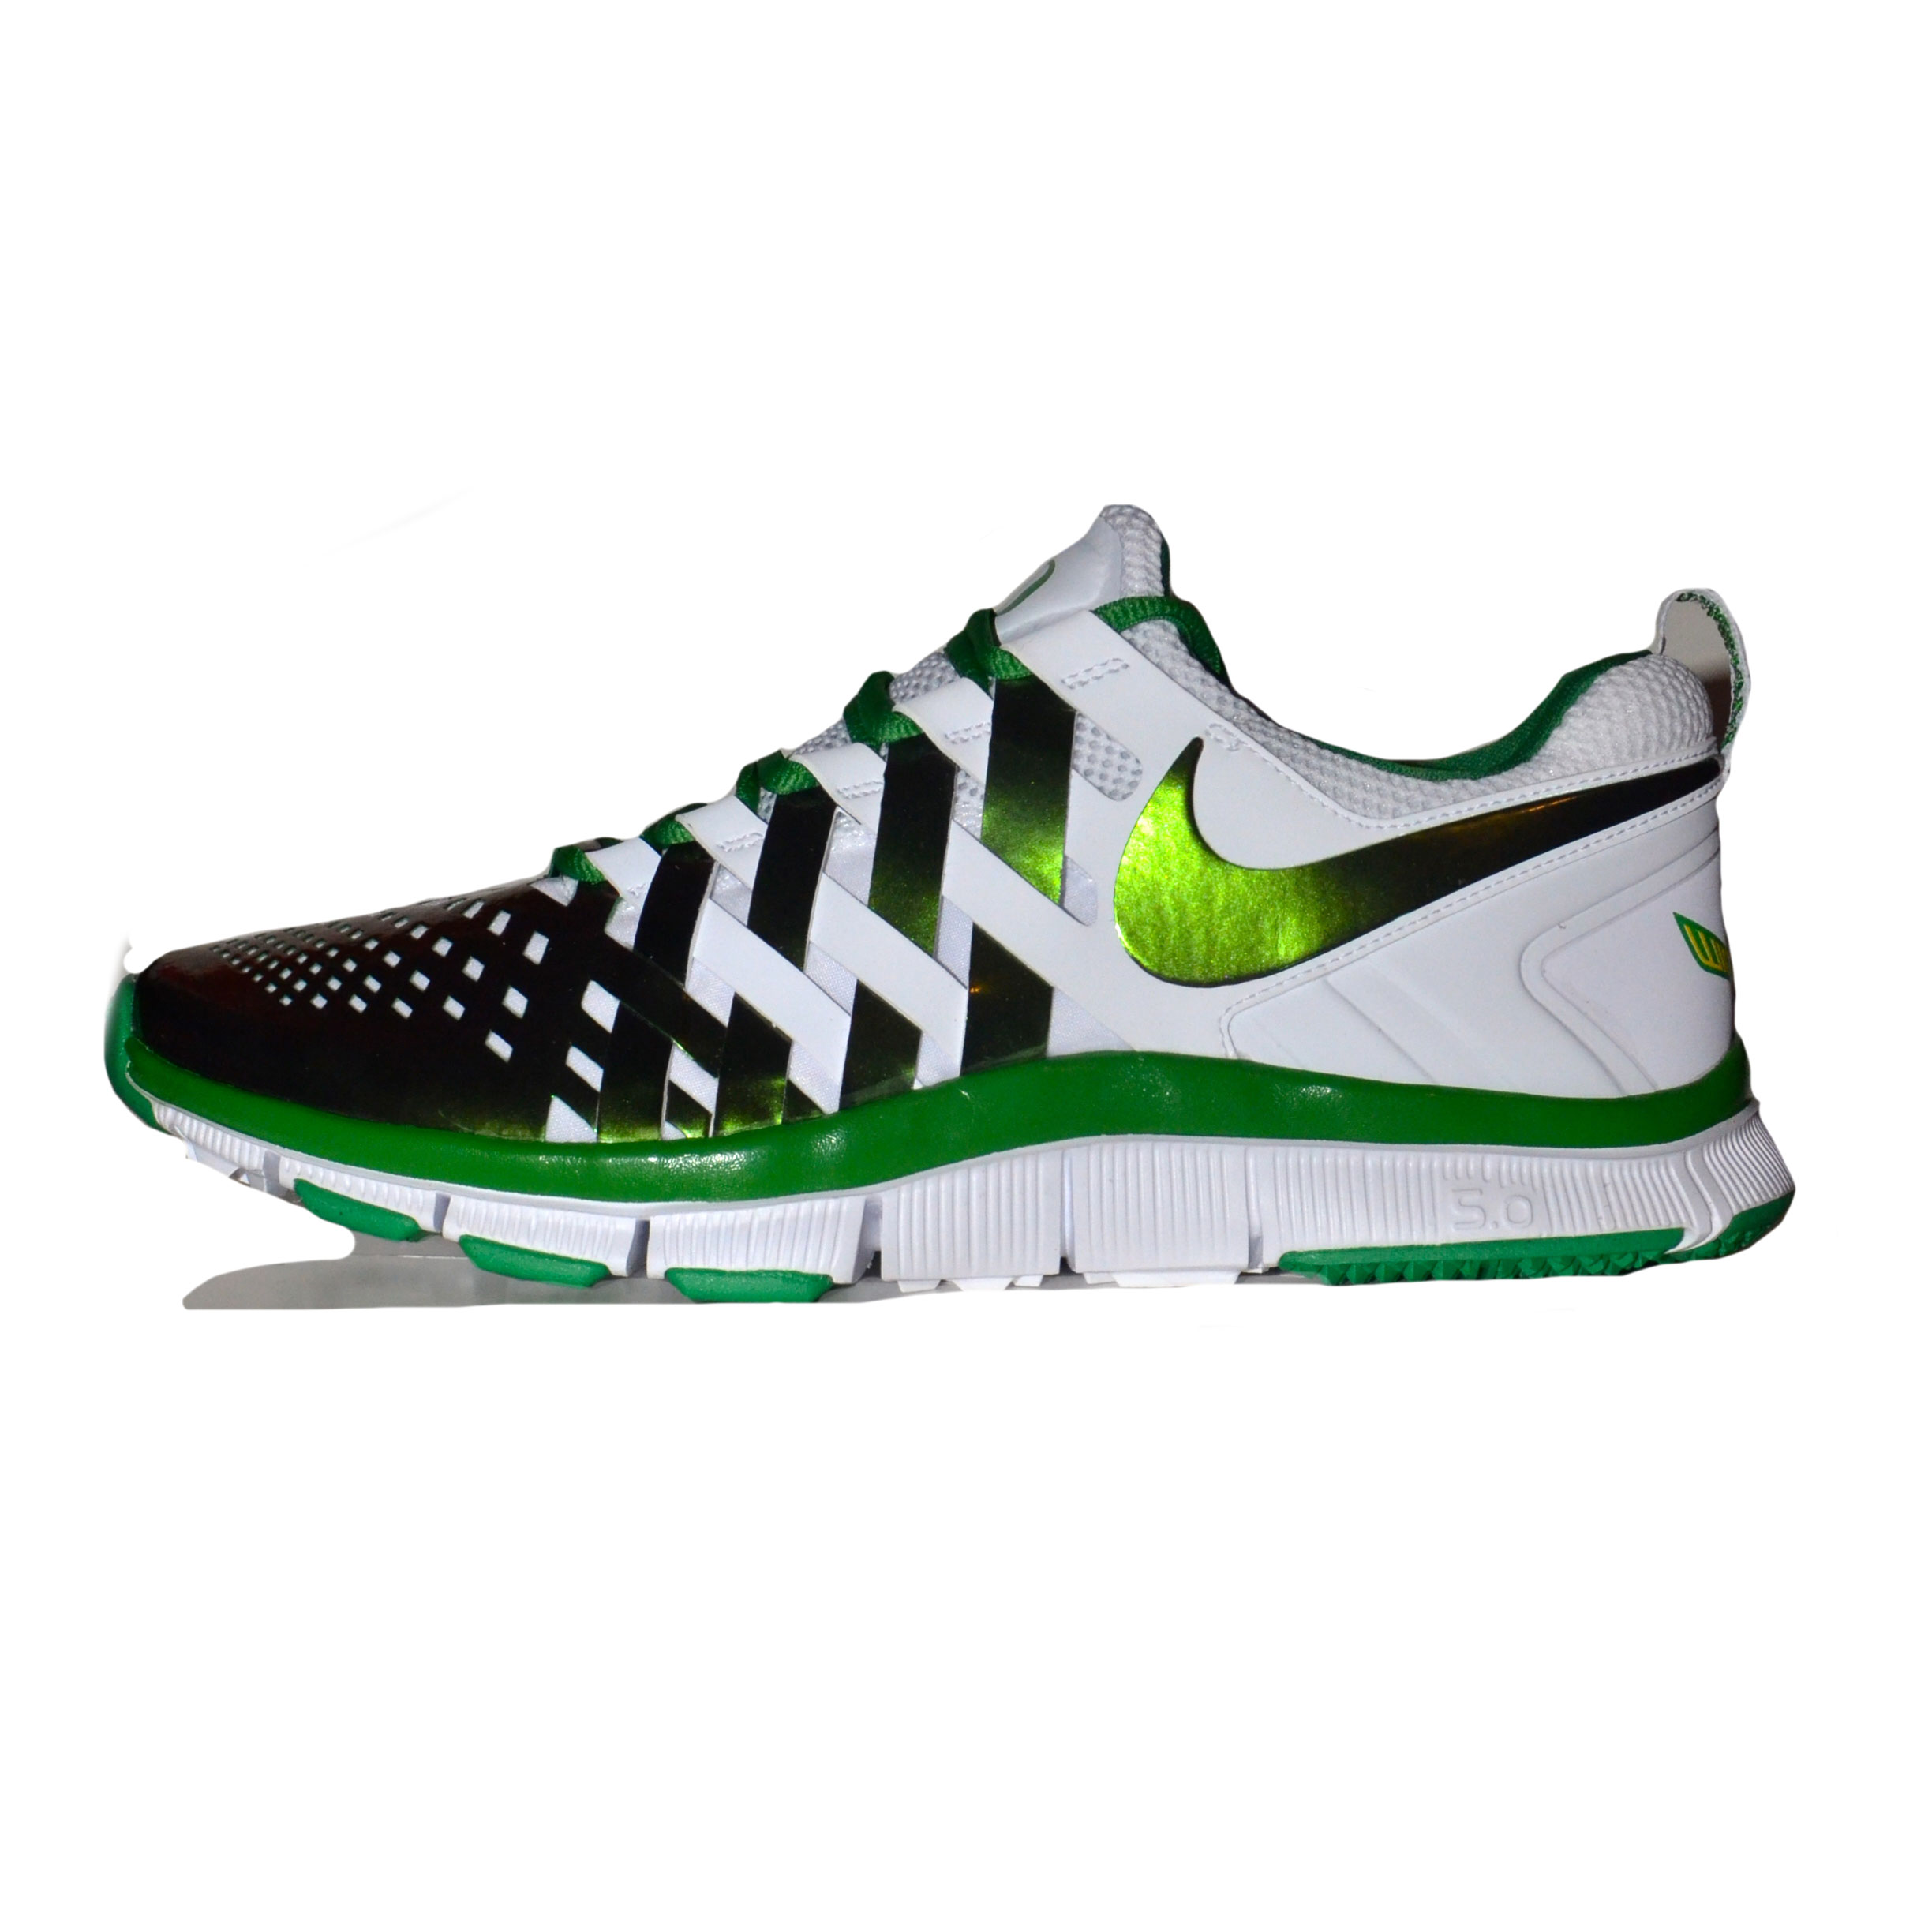 nike free trainer 5.0 size 7